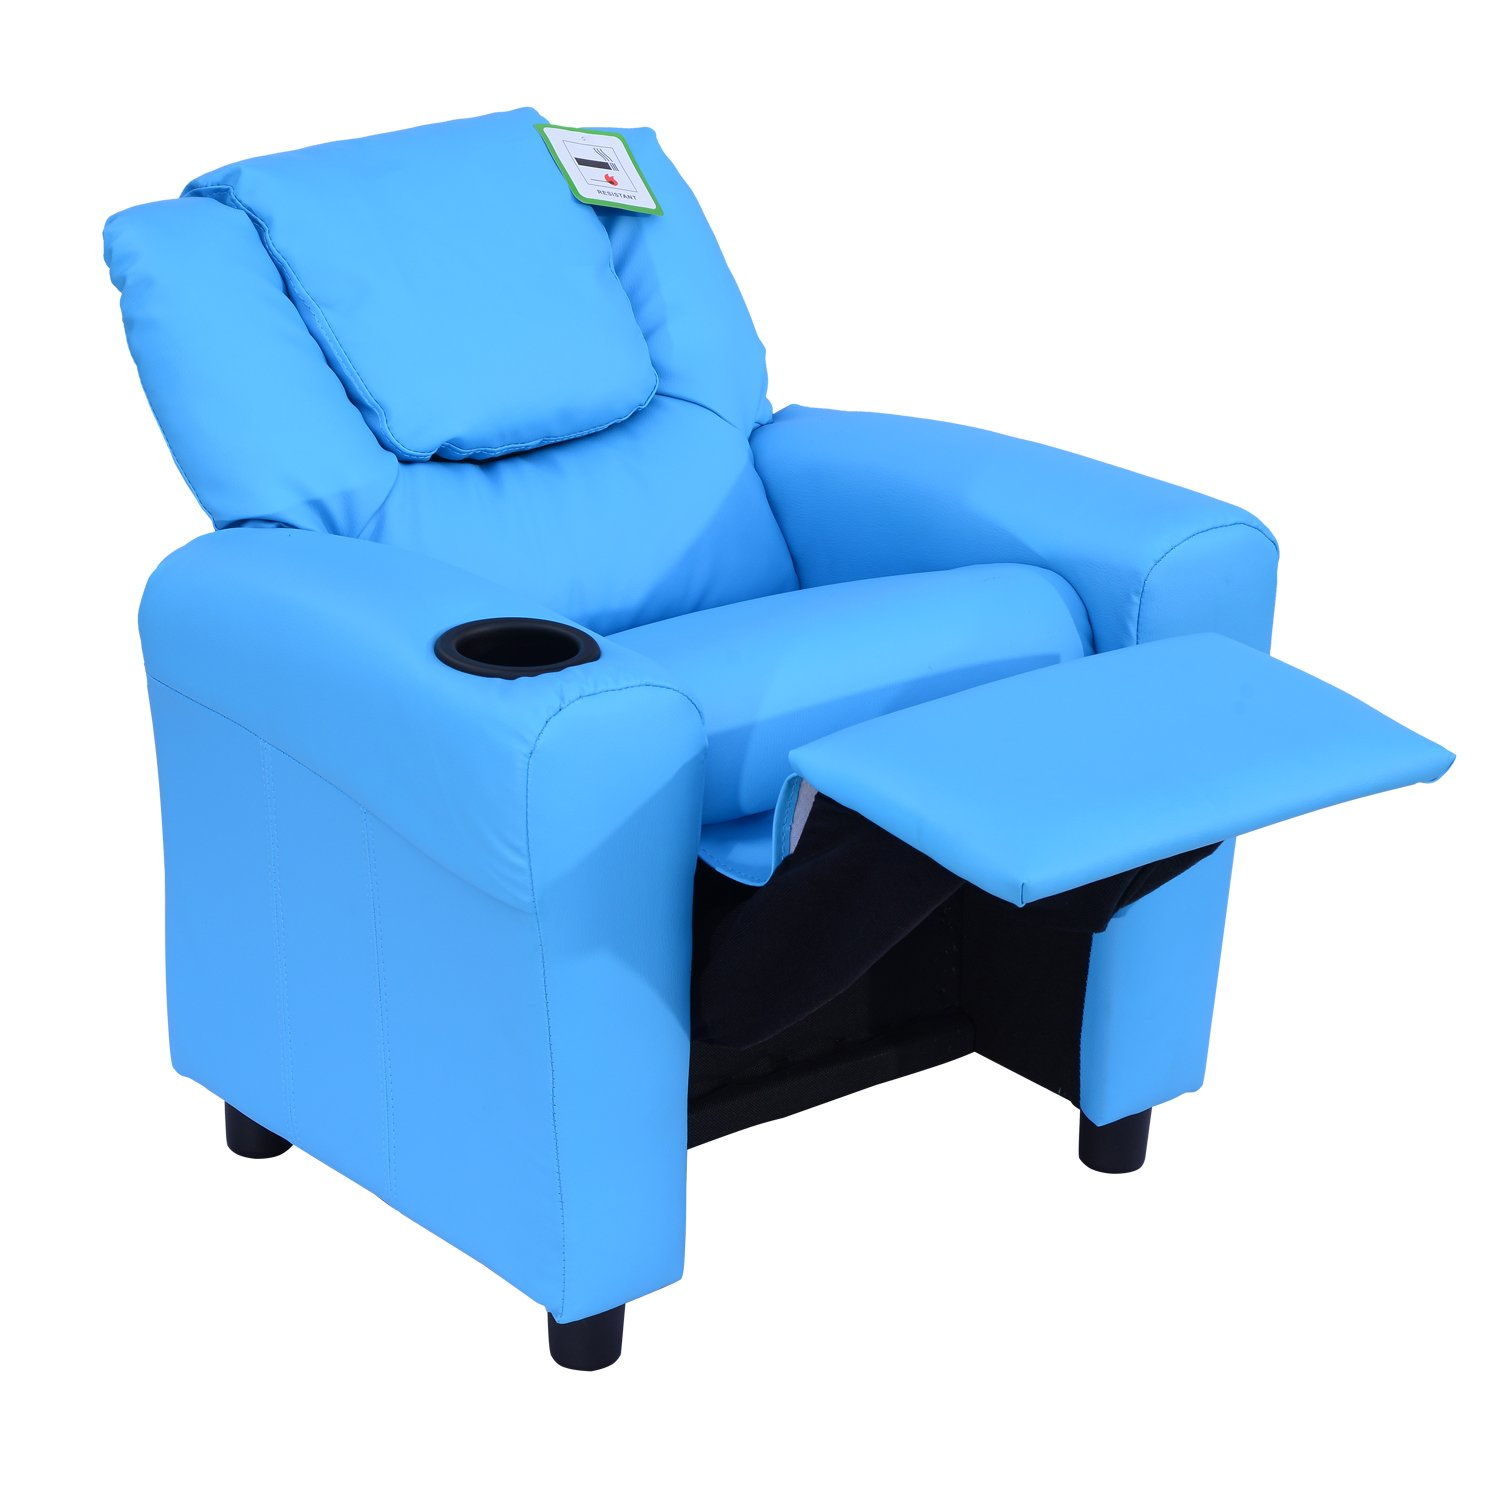 Hom Kids Children Recliner Lounger Armchair Games Chair Sofa